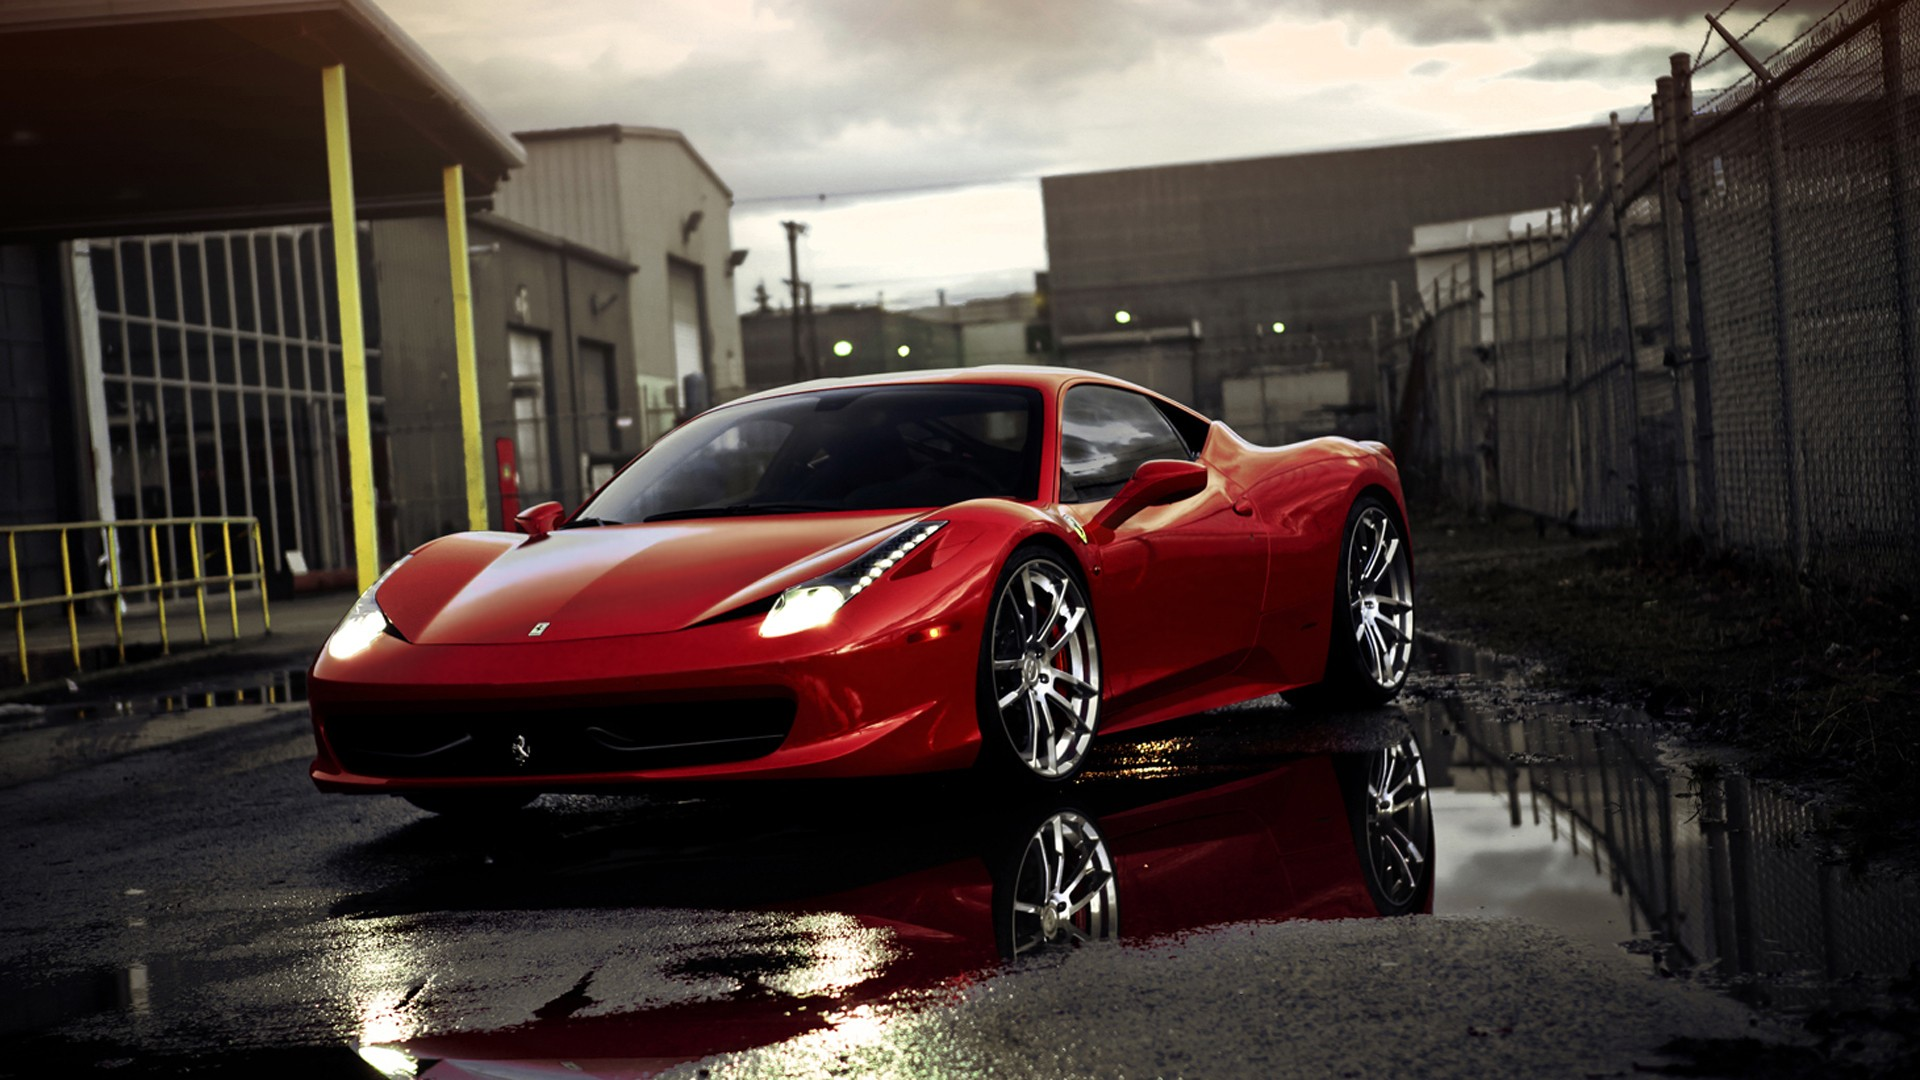 Ferrari Full HD Wallpaper And Background Image